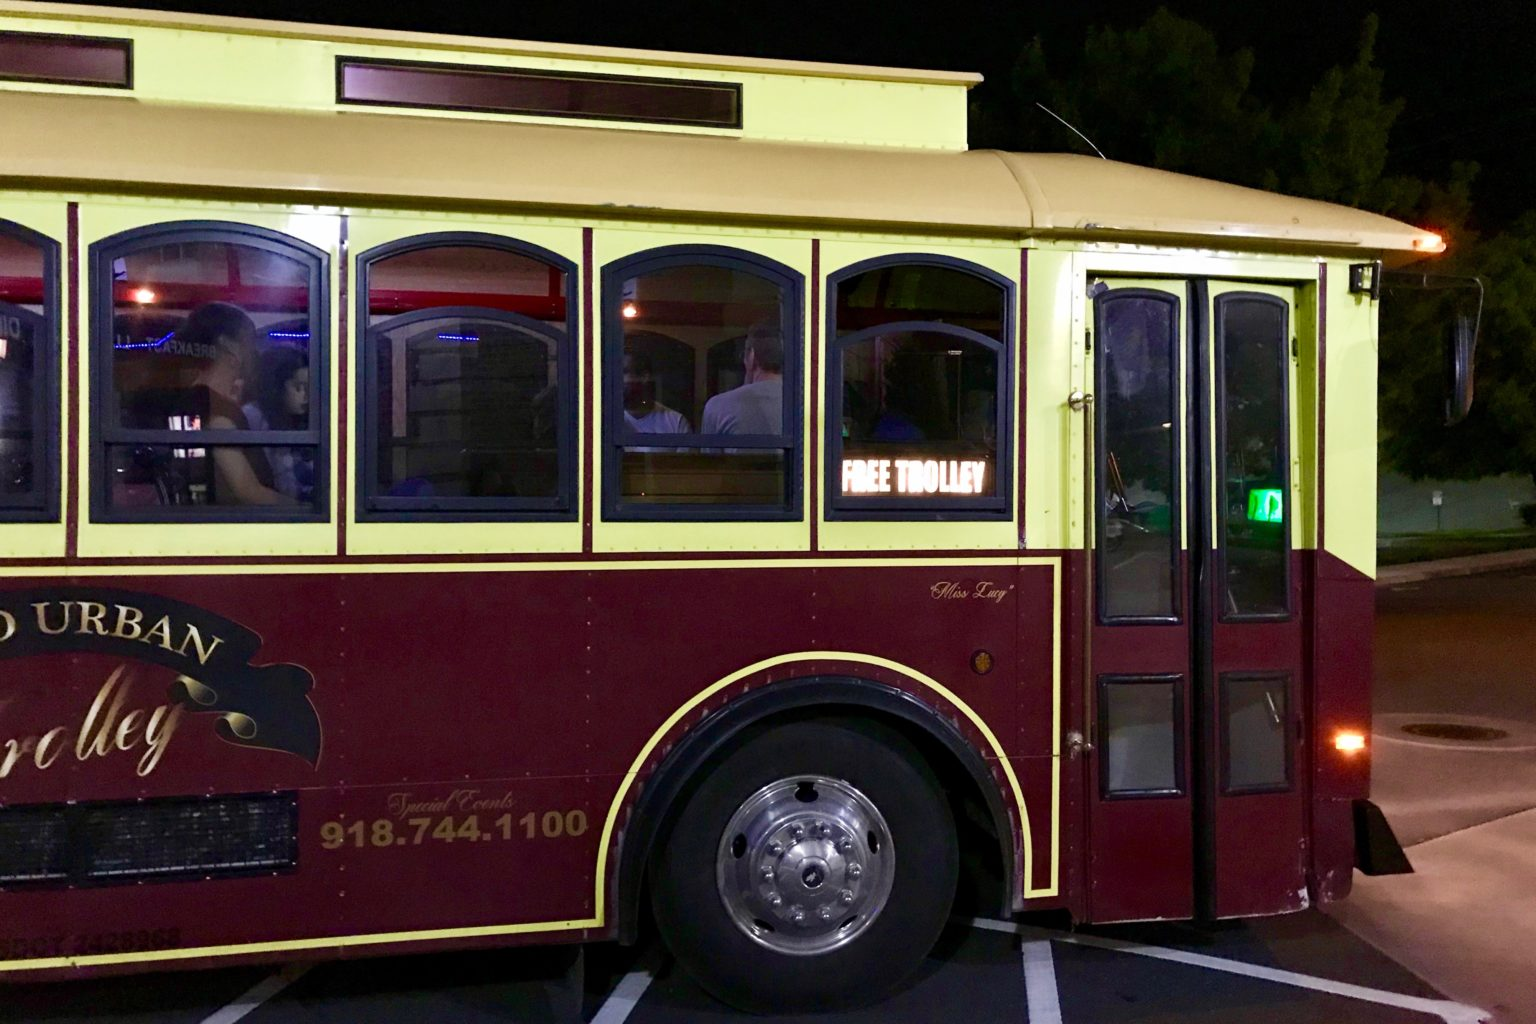 Trolley car in downtown Tulsa Oklahoma offers free rides